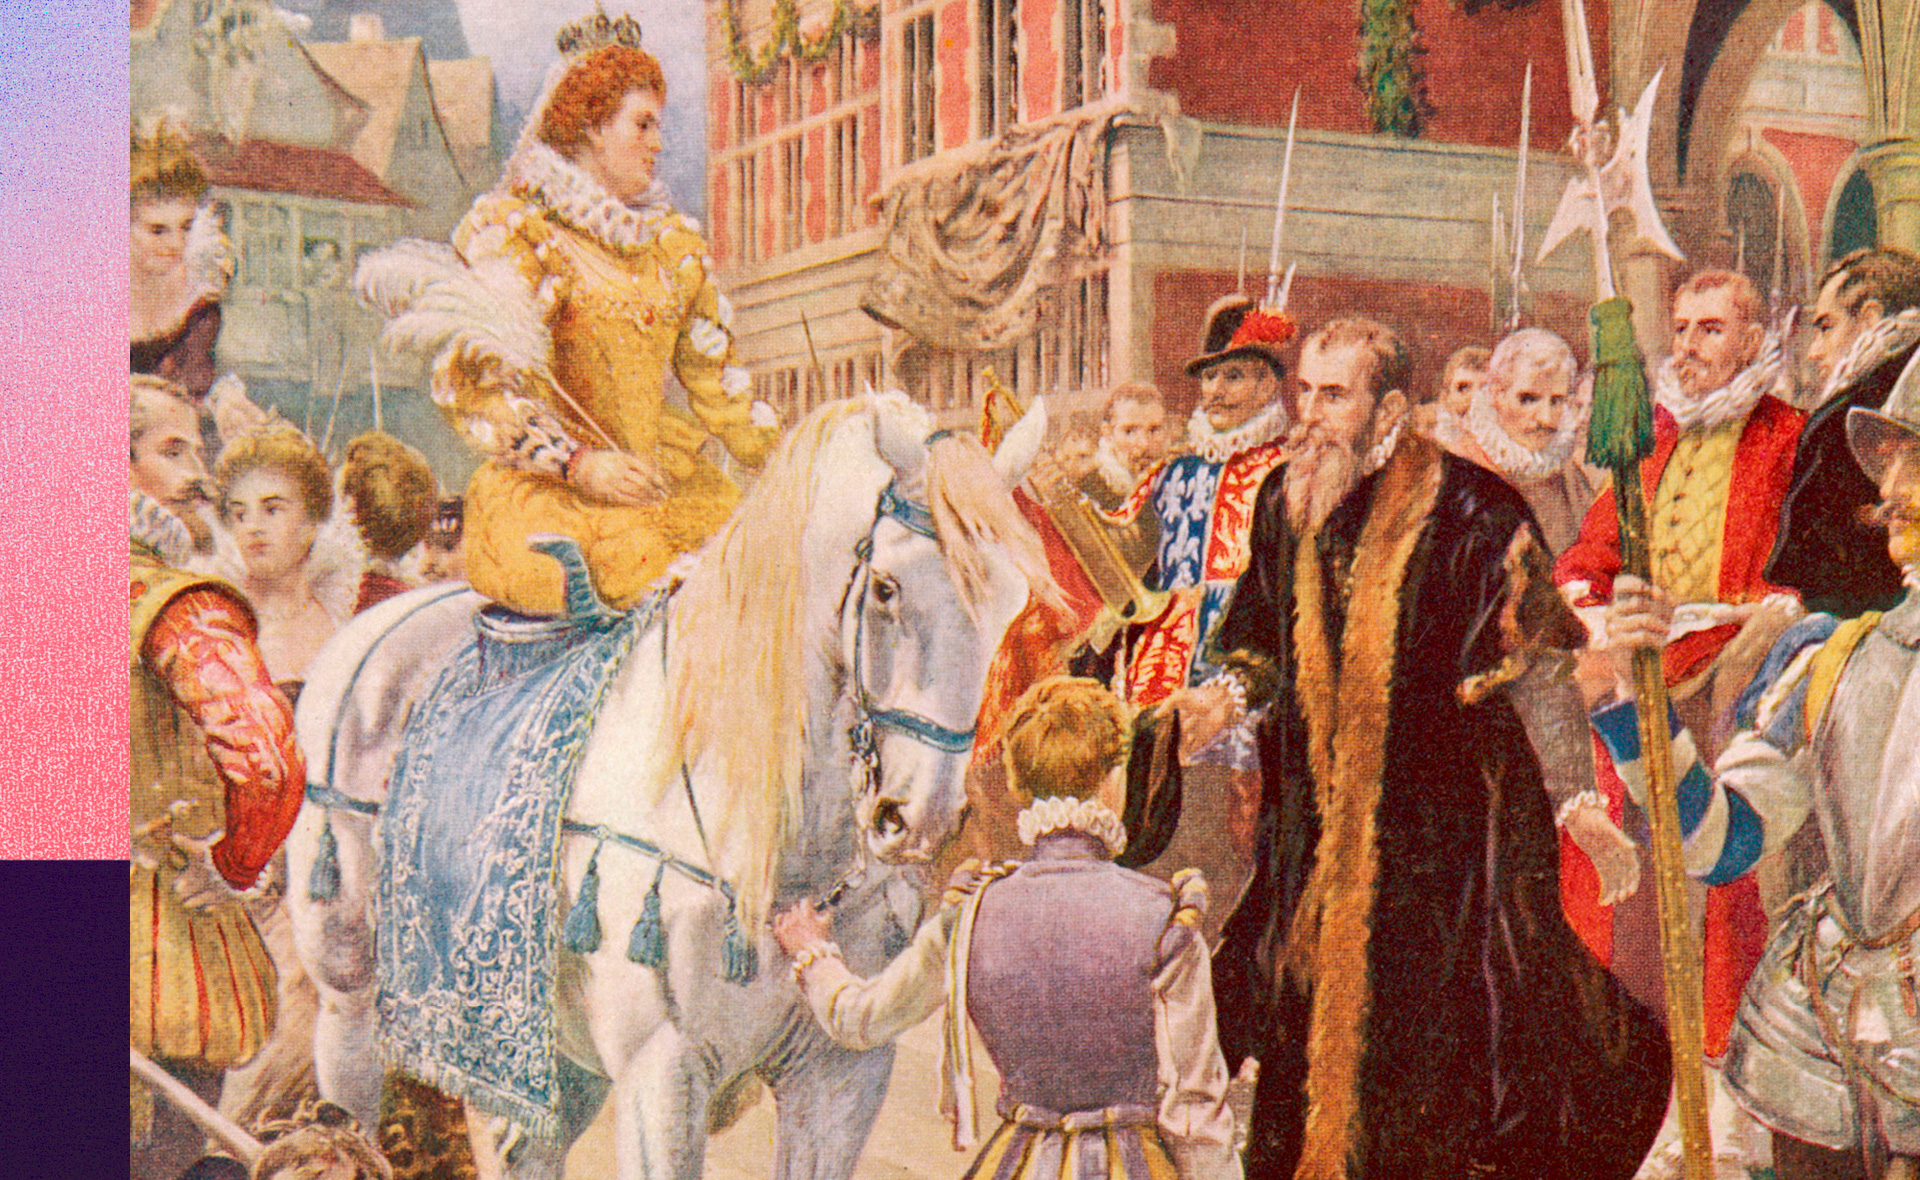 Queen Elizabeth I officially opened The Royal Exchange in 1571